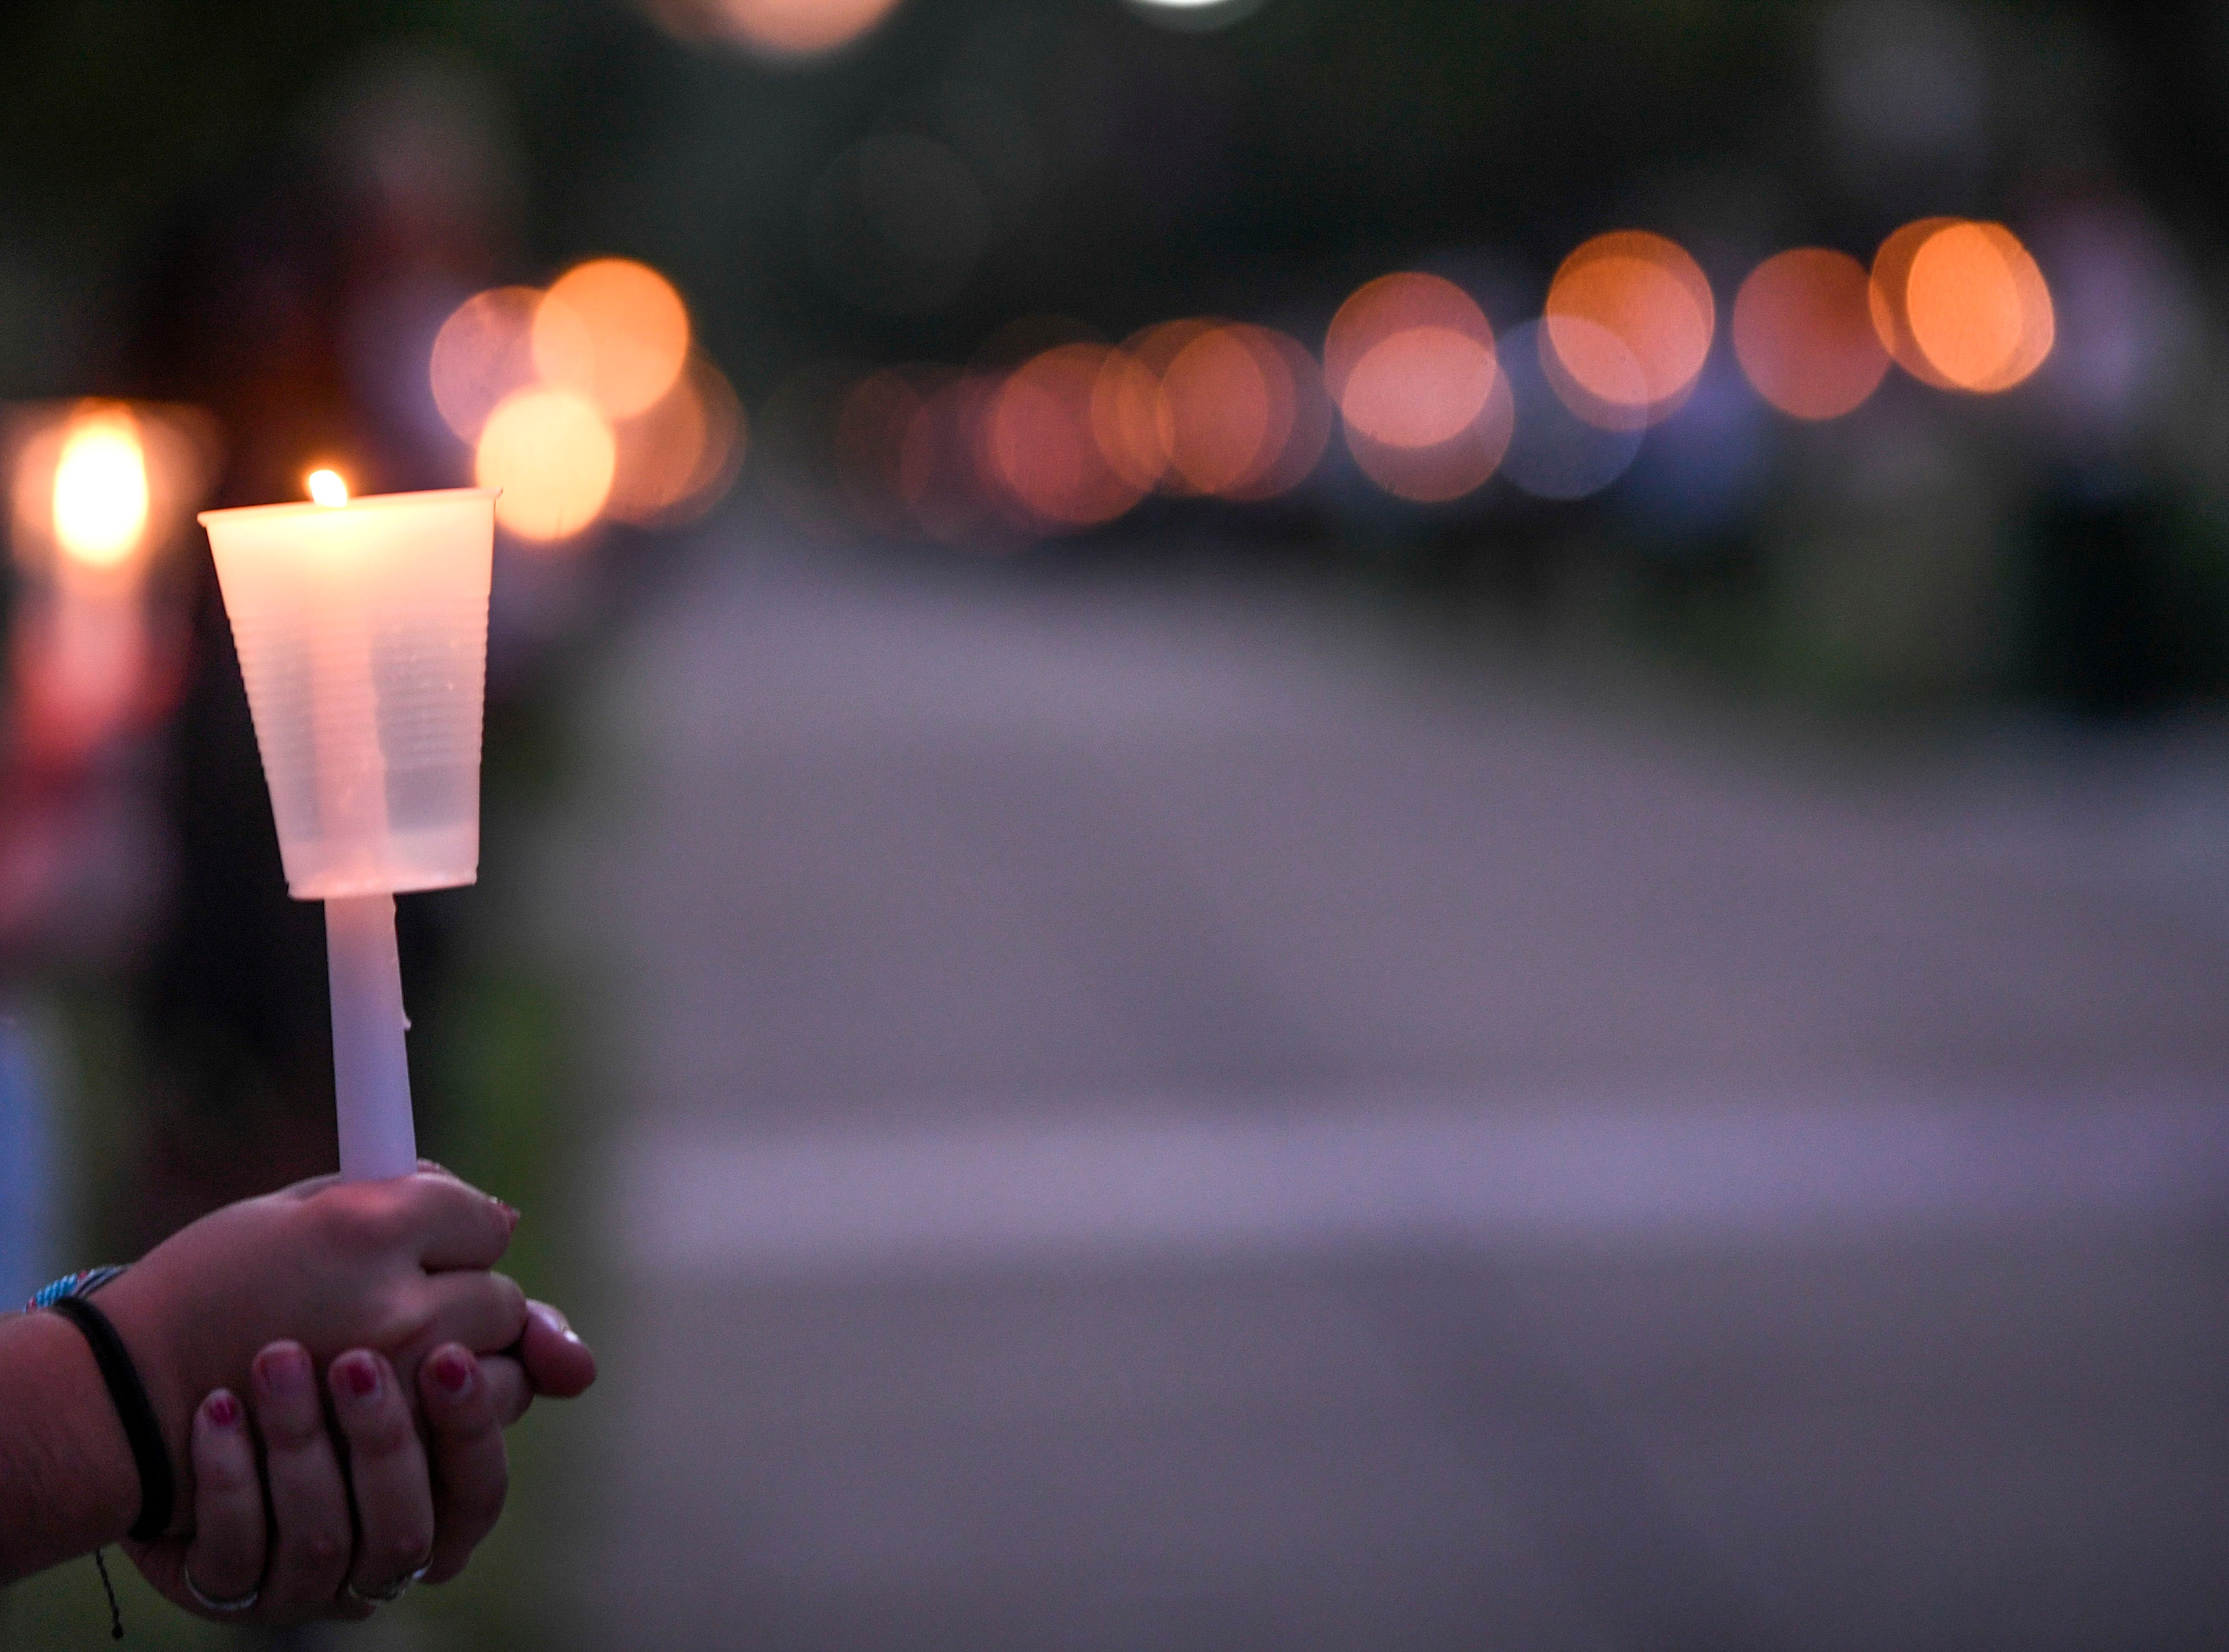 Union University students hold candles for the vigil walk during the annual Remember Me Walk hosted at Union University in Jackson, Tenn., on Monday, Oct. 1, 2018.